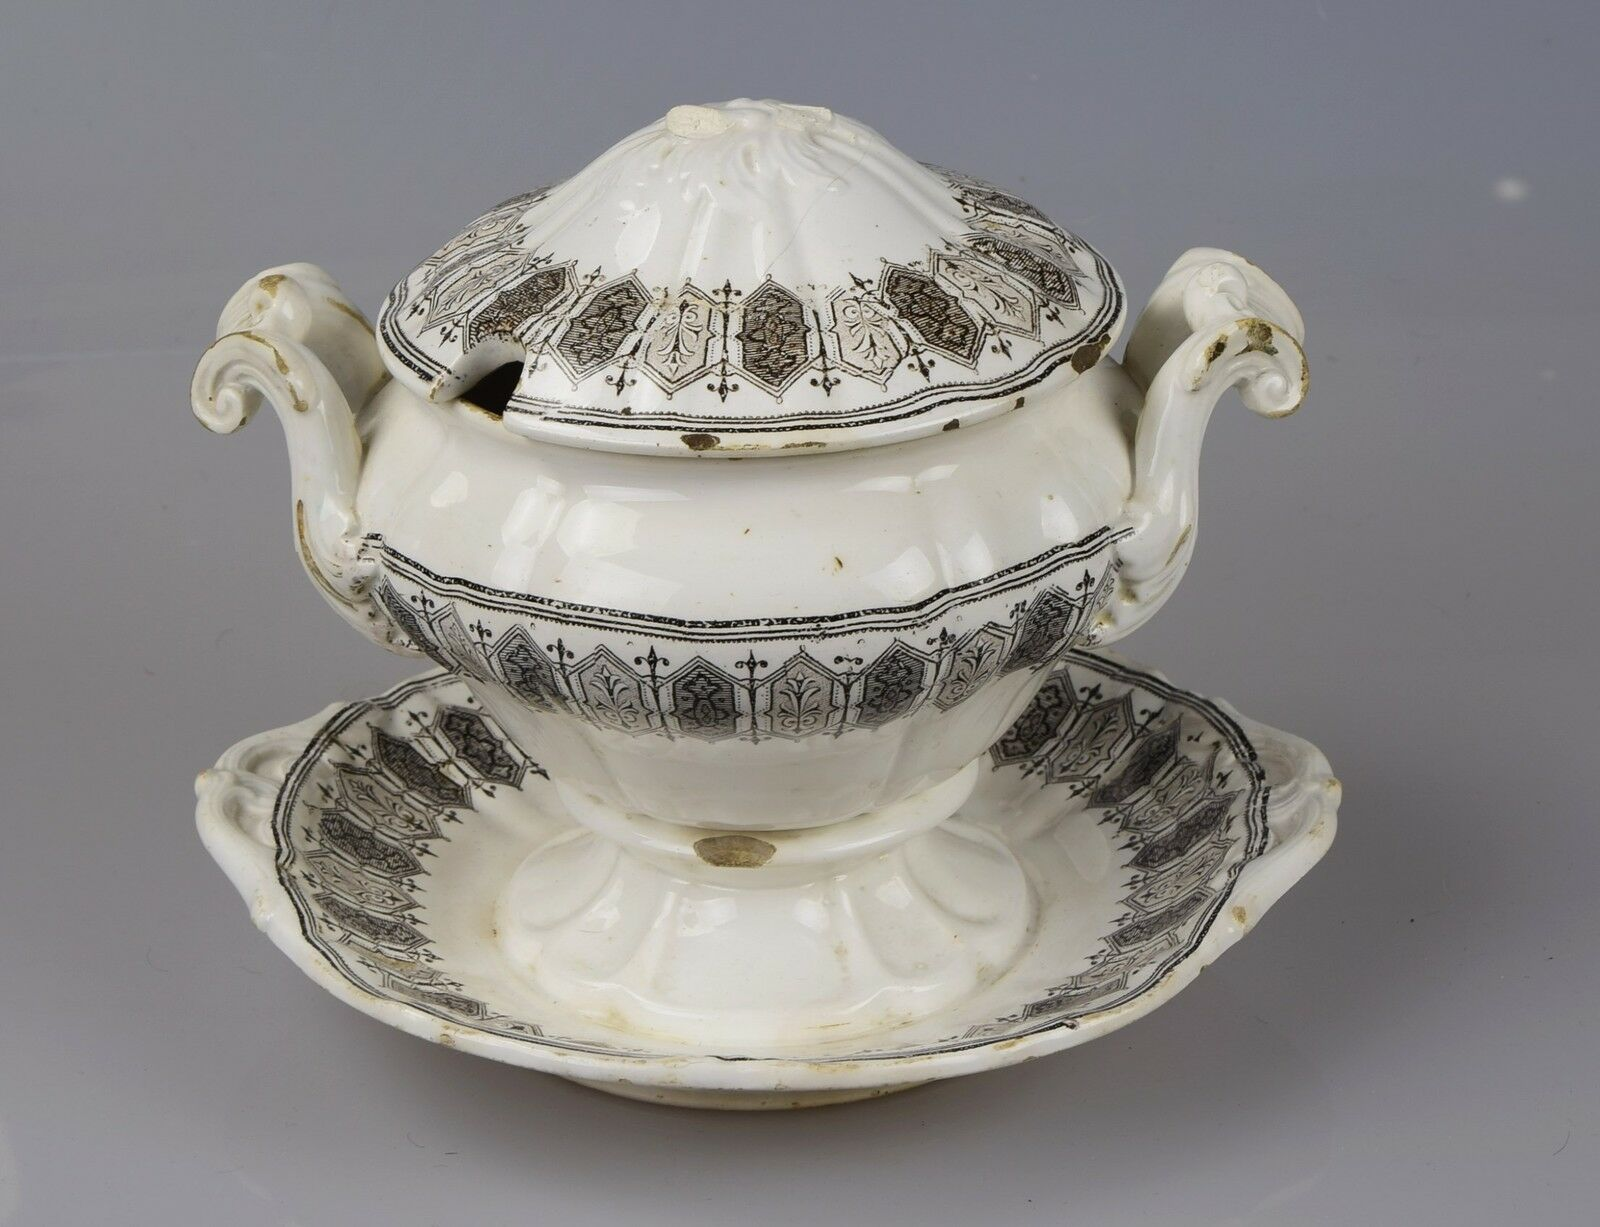 Terrine soupière porcelaine tureen Gardner Russie Moscou 19 on a